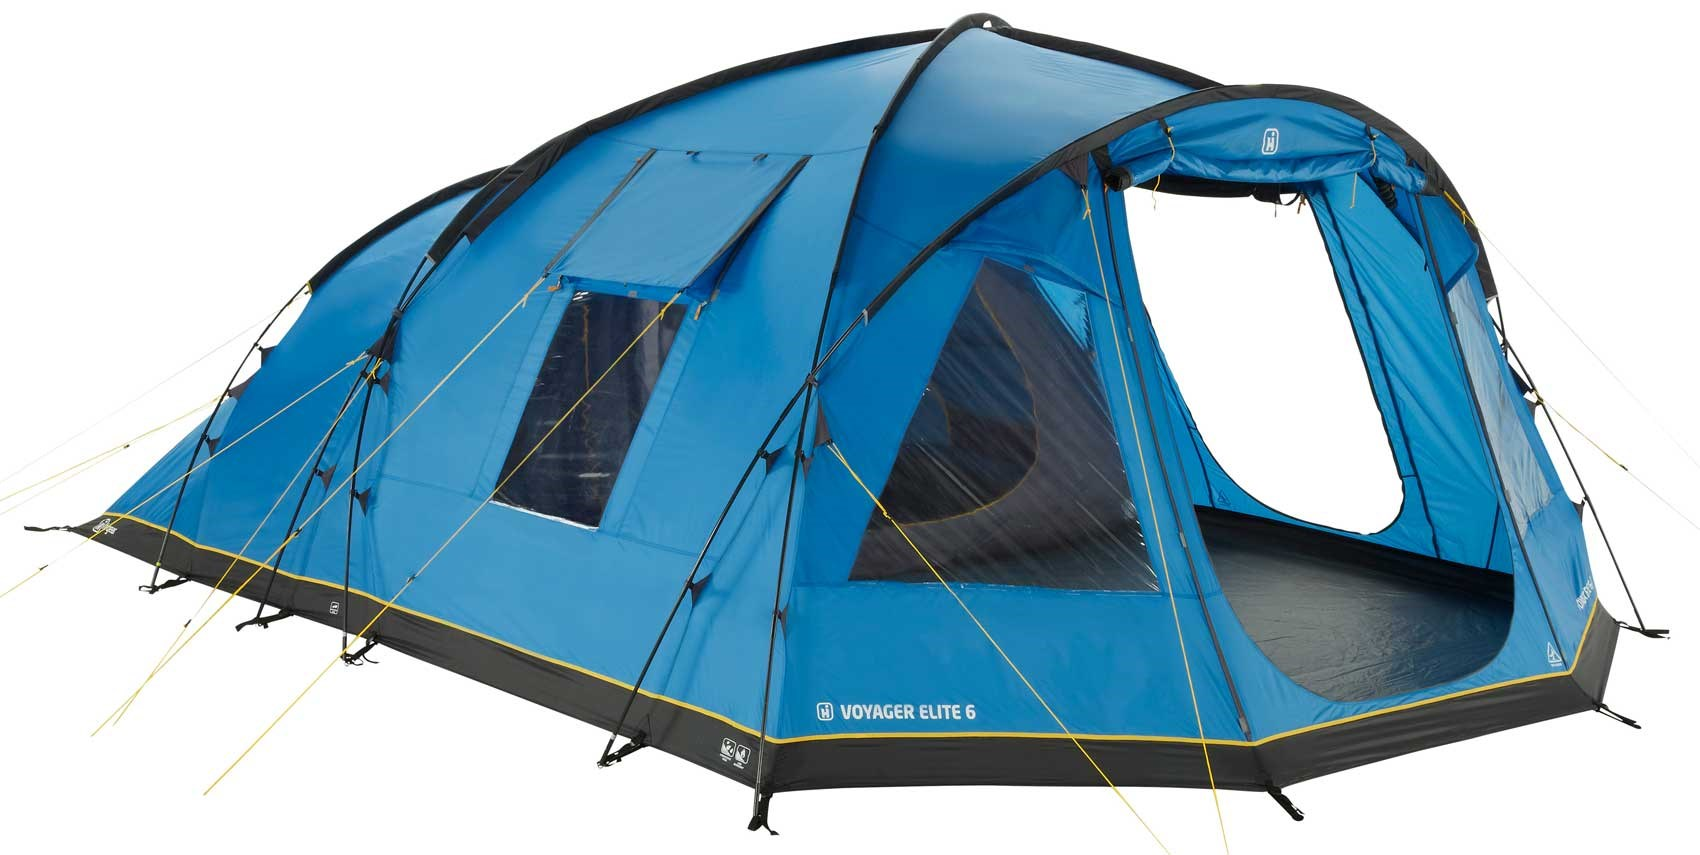 preload  sc 1 st  GO Outdoors & Hi Gear Voyager Elite 6 Family Tent | GO Outdoors